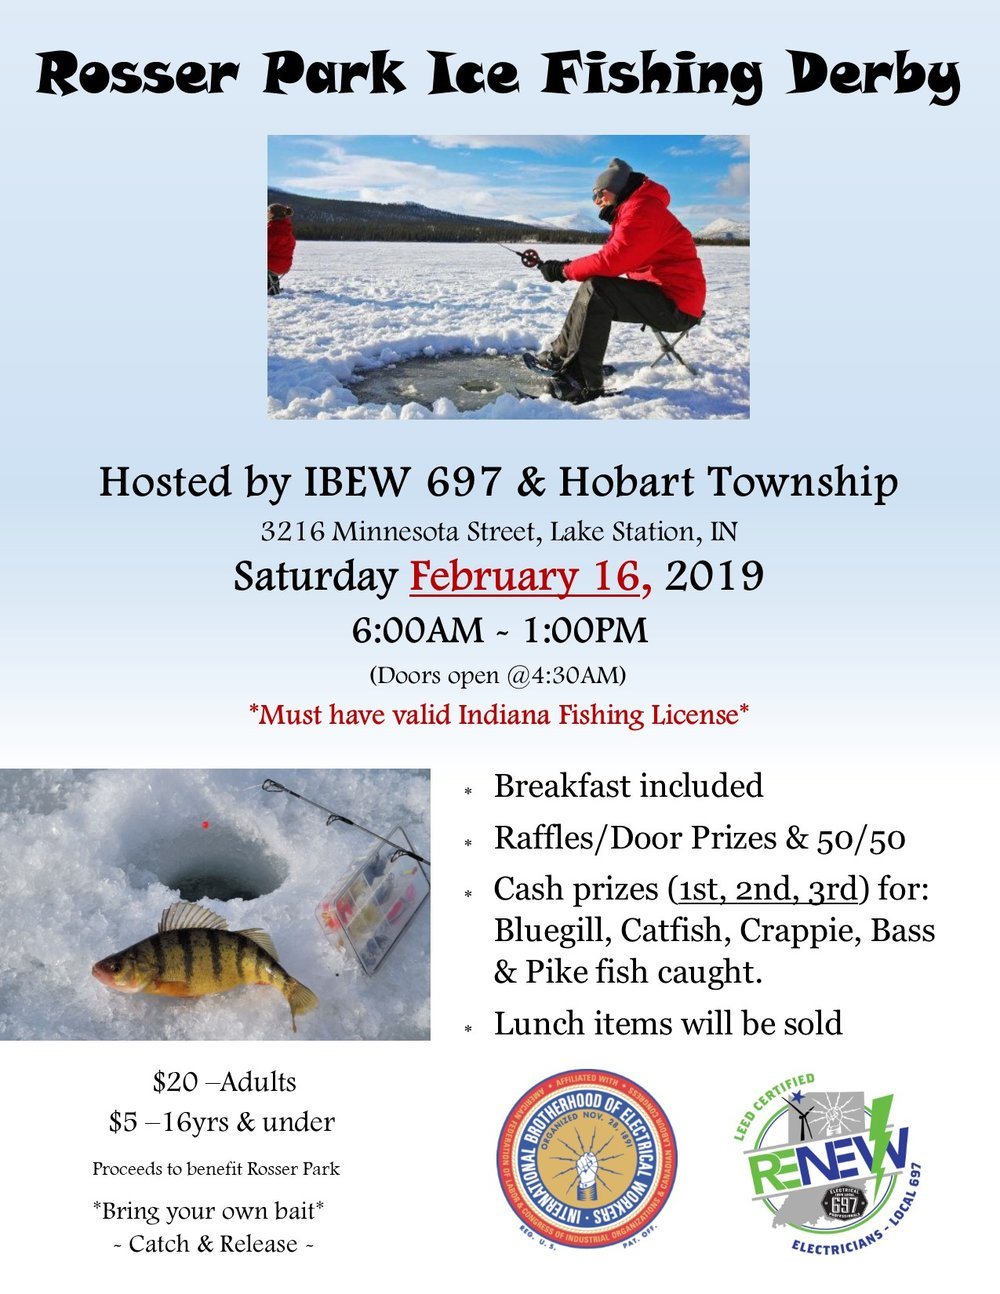 RENEW Ice Fishing 2019.jpg